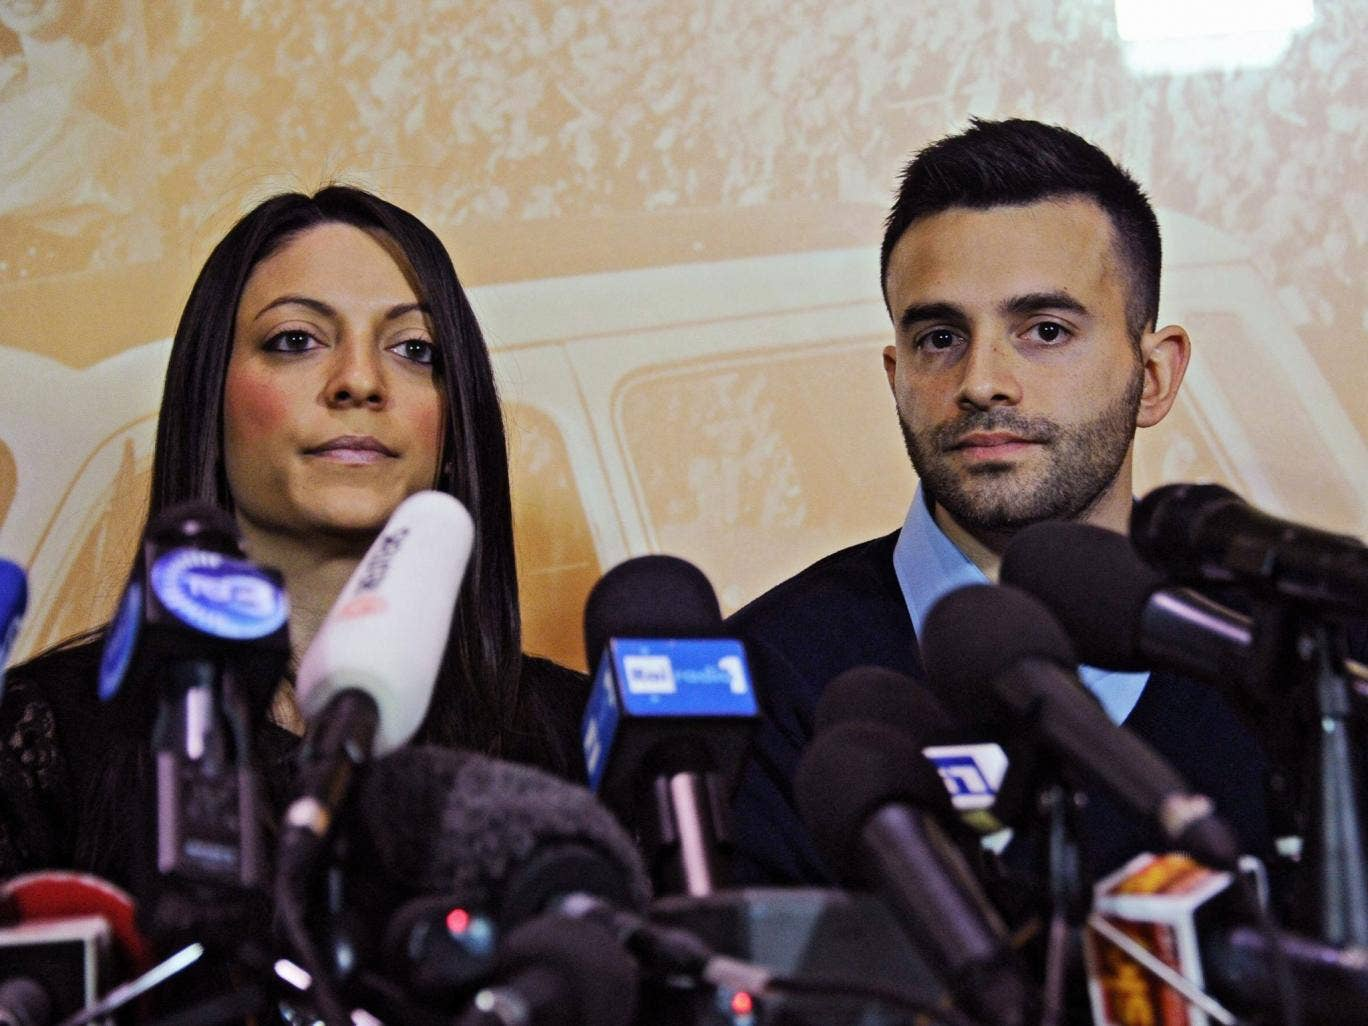 Kercher's sister, Stephanie Kercher (L) and brother Lyle Kercher speak during a press conference in Florence, 2014